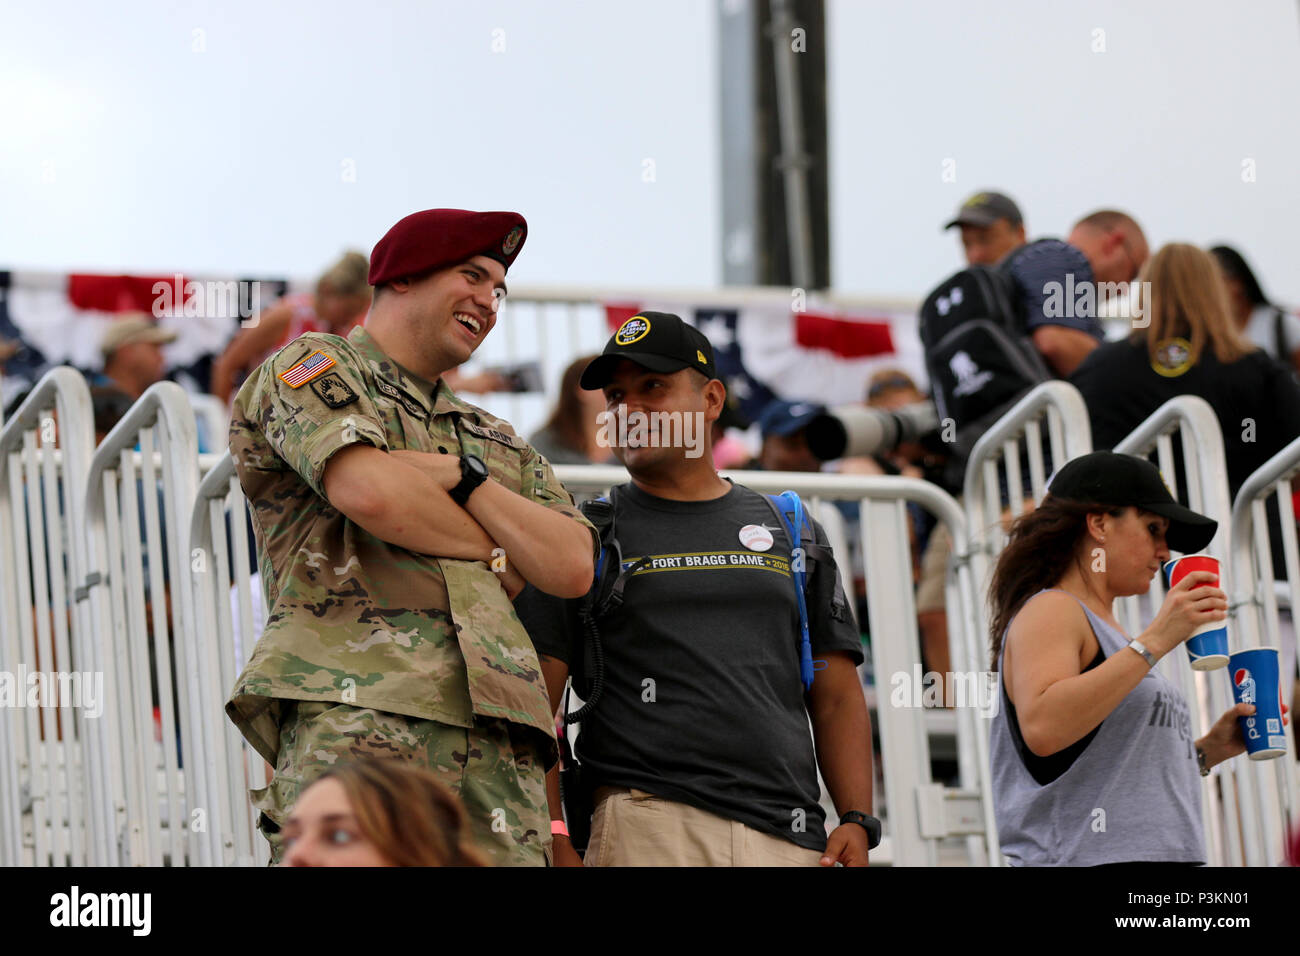 Spc. Nicholas Redding with the 3rd Military Information Support Battalion interacts with a spectator during the social media takeover Redding volunteered to do with Major League Baseball as the Atlanta Braves and Miami Marlins faceoff at Fort Bragg Field, Fort Bragg, N.C. on Sunday, July 3, 2016. Fort Bragg, MLB and the MLB Players Association teamed up to put on the historic regular season game between the Braves and Marlins at Fort Bragg. (US Army photo by Staff Sgt. Jason Duhr) - Stock Image